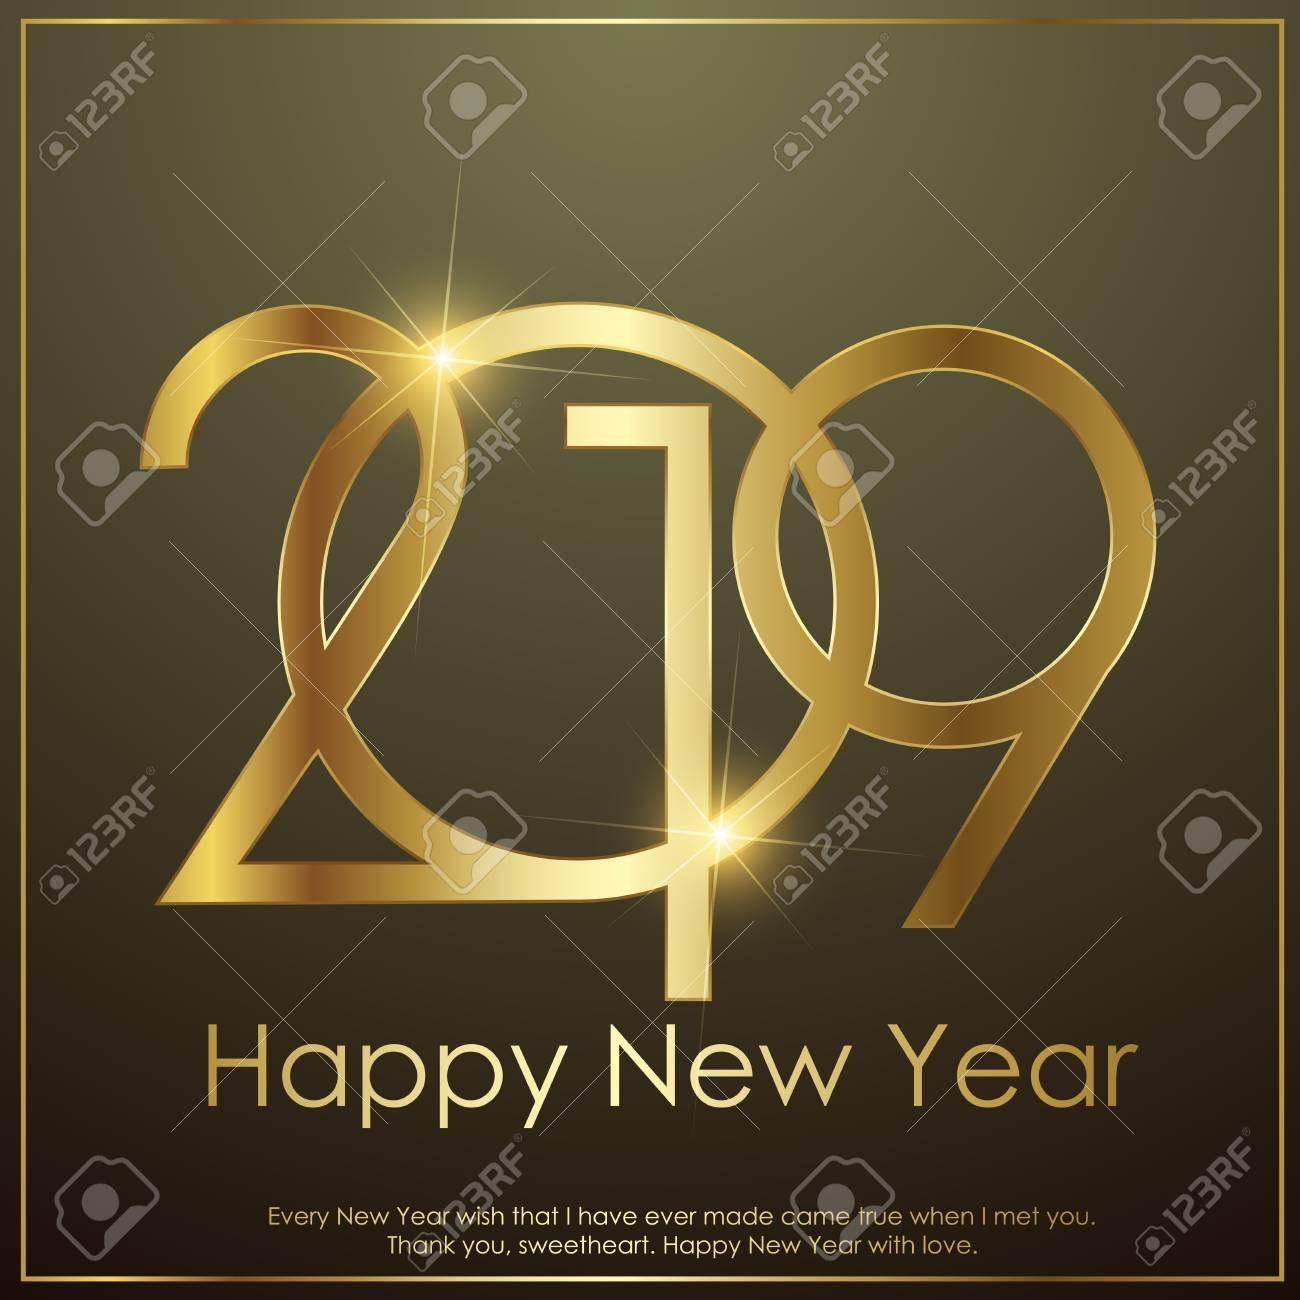 Happy New Year or Christmas greeting card with gold text